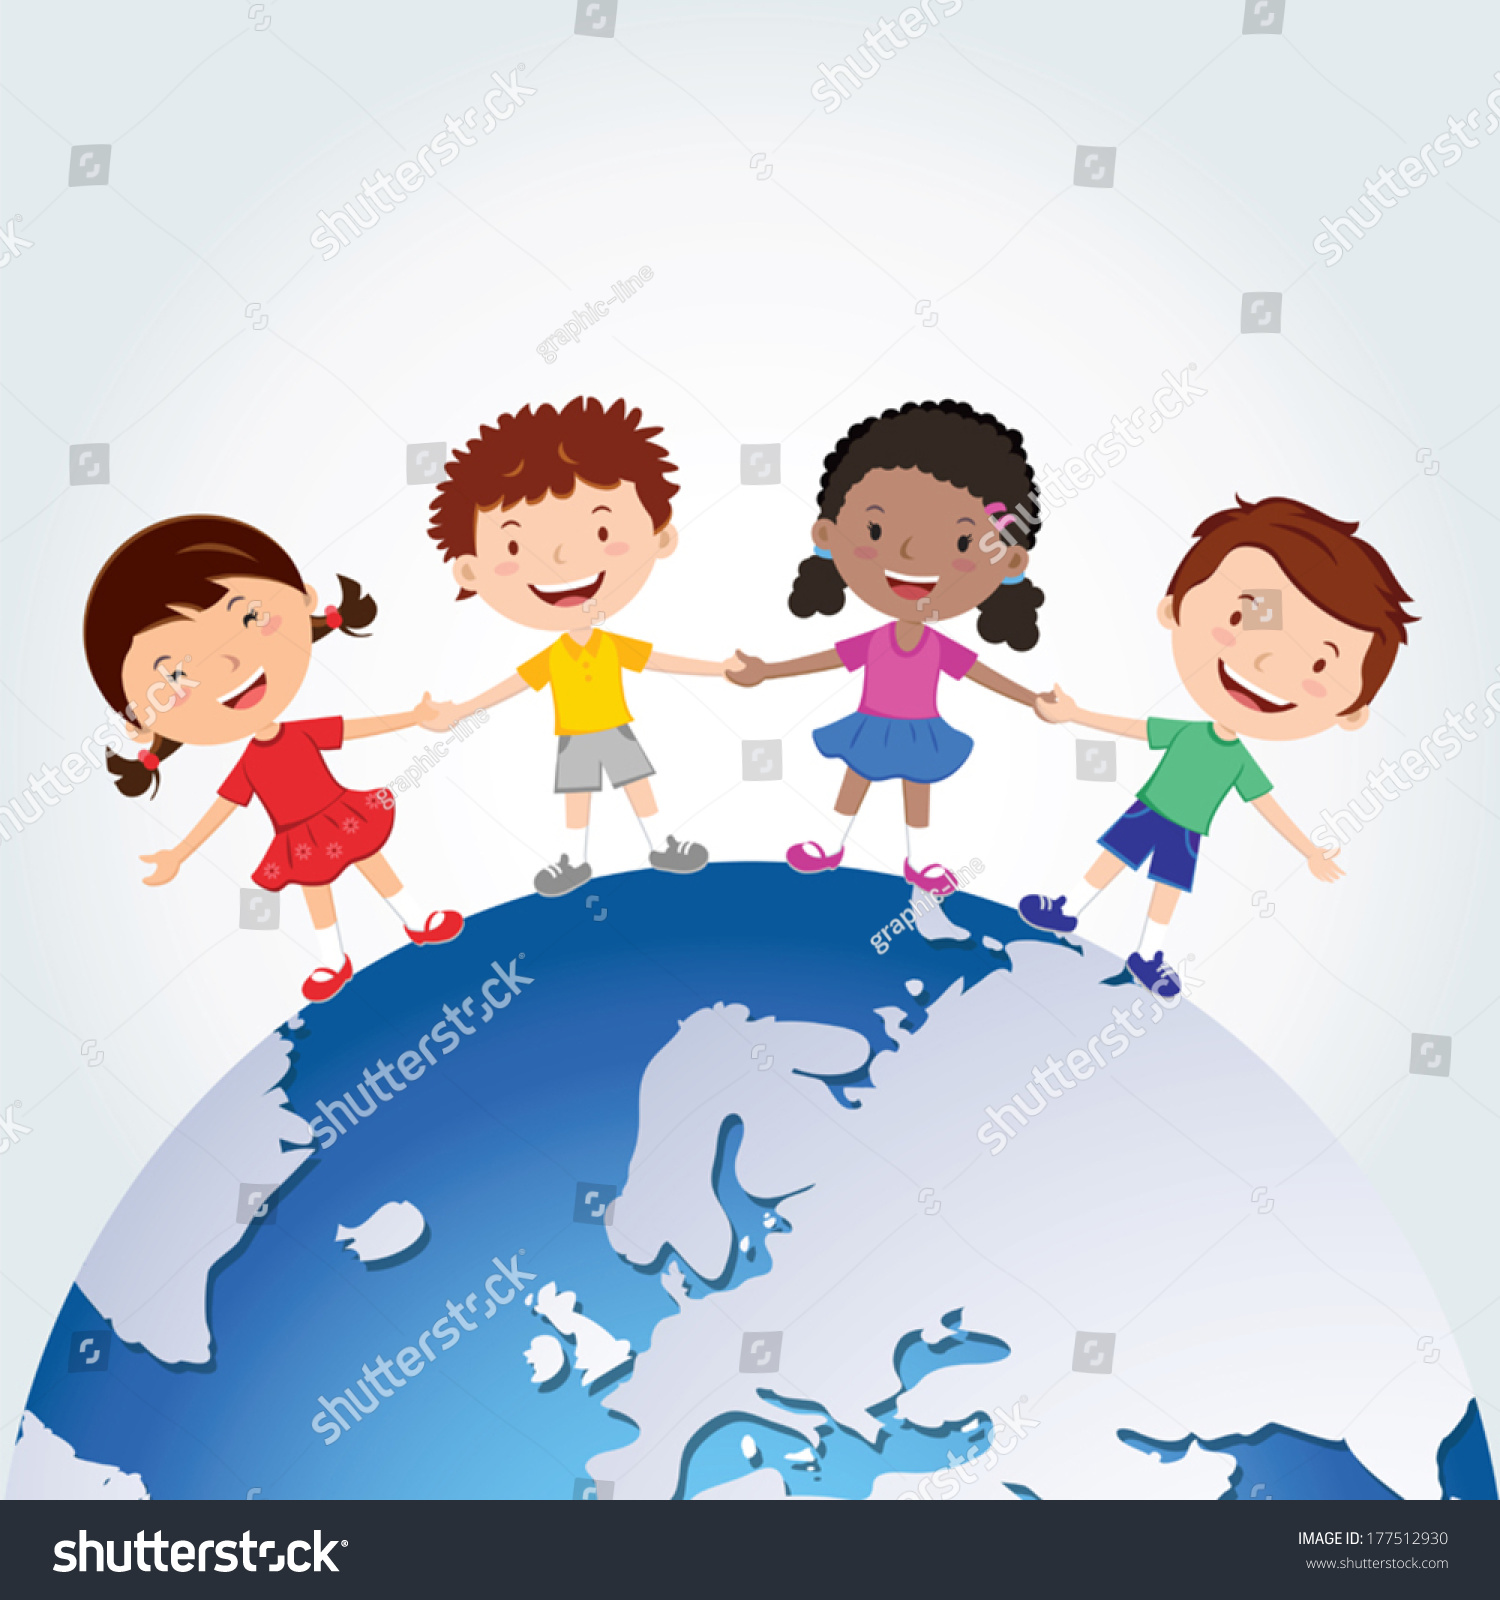 international friendship day and music The international day of friendship was proclaimed in 2011 by the un general assembly with the idea that friendship between peoples, countries, cultures and individuals can inspire peace.